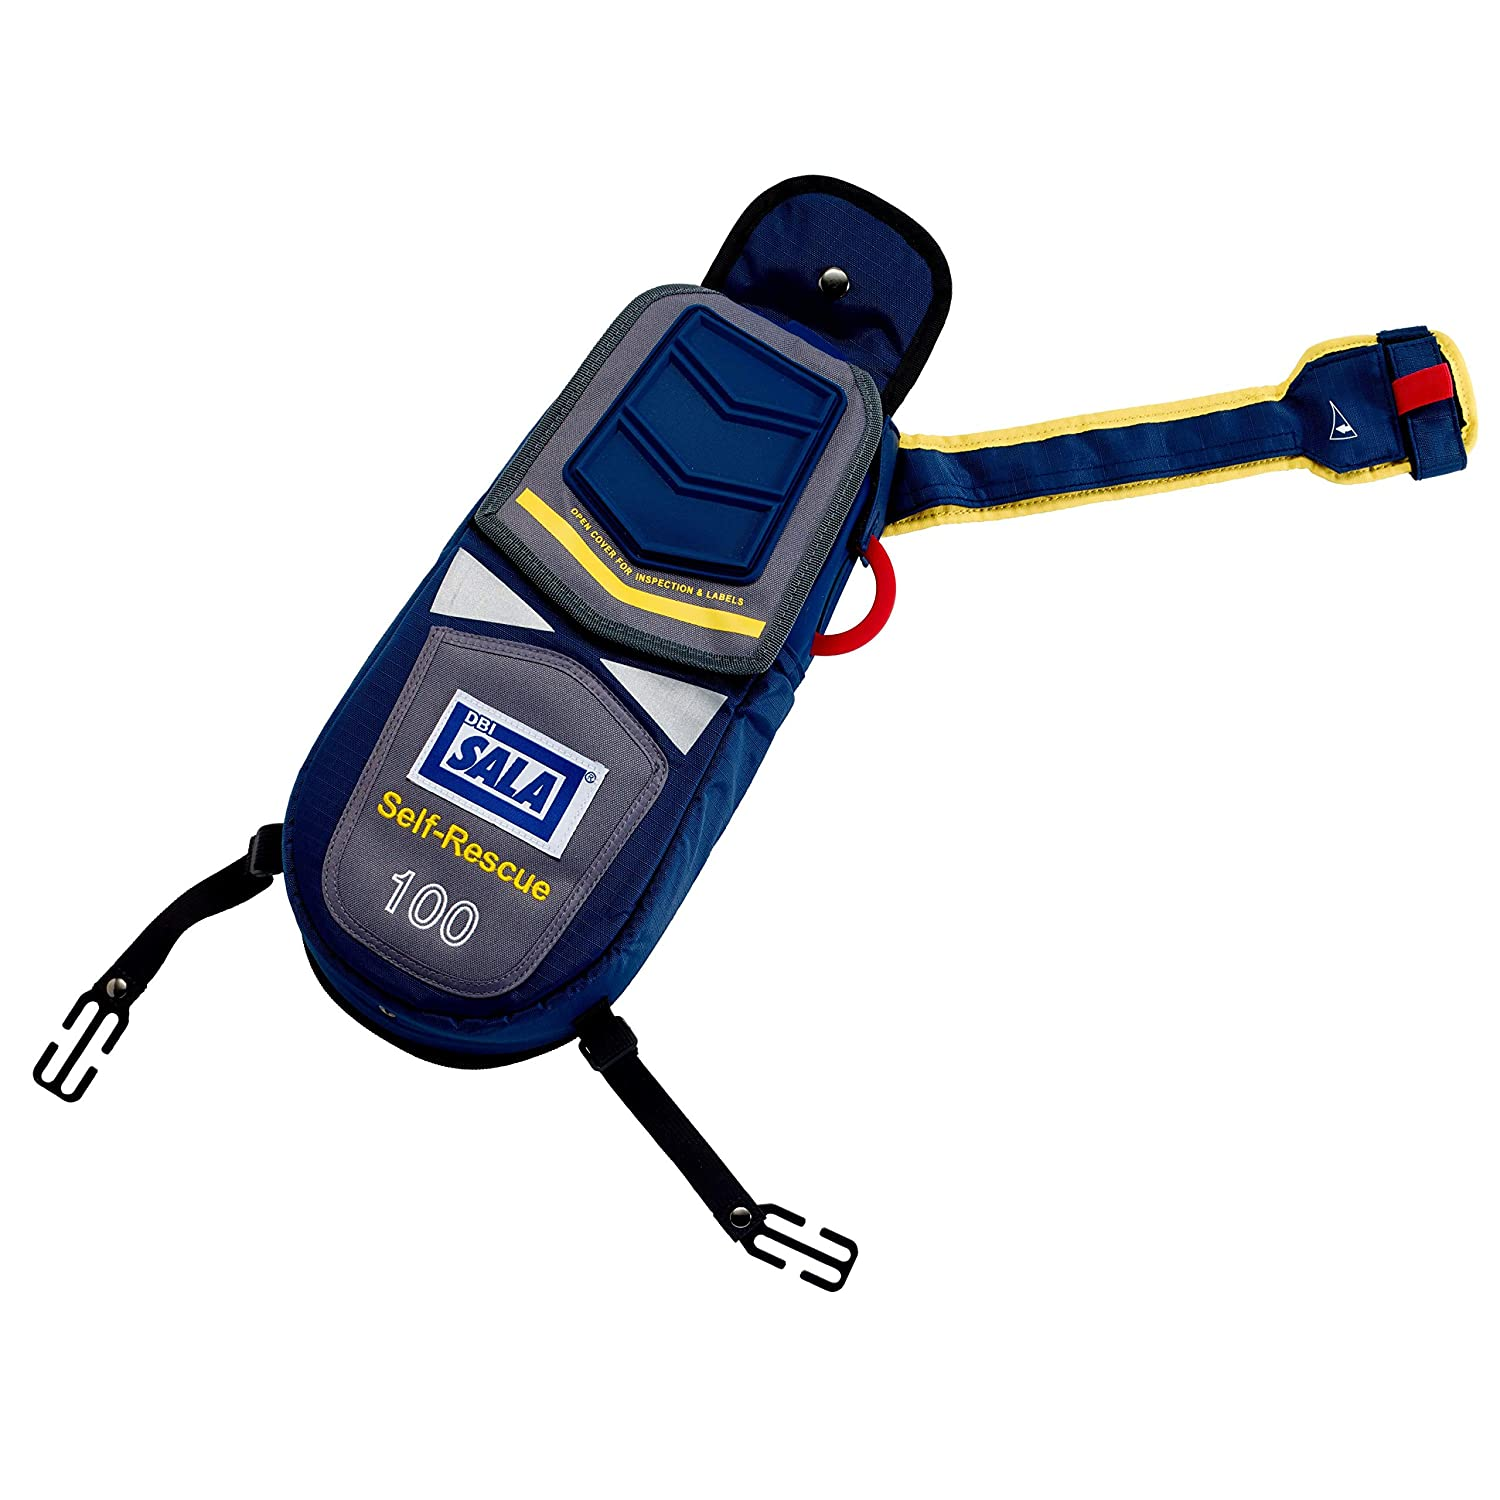 3M DBI-SALA Self-Rescue 100 3320031 Fall Protection Indianapolis Mall 1 Blue Finally popular brand EA